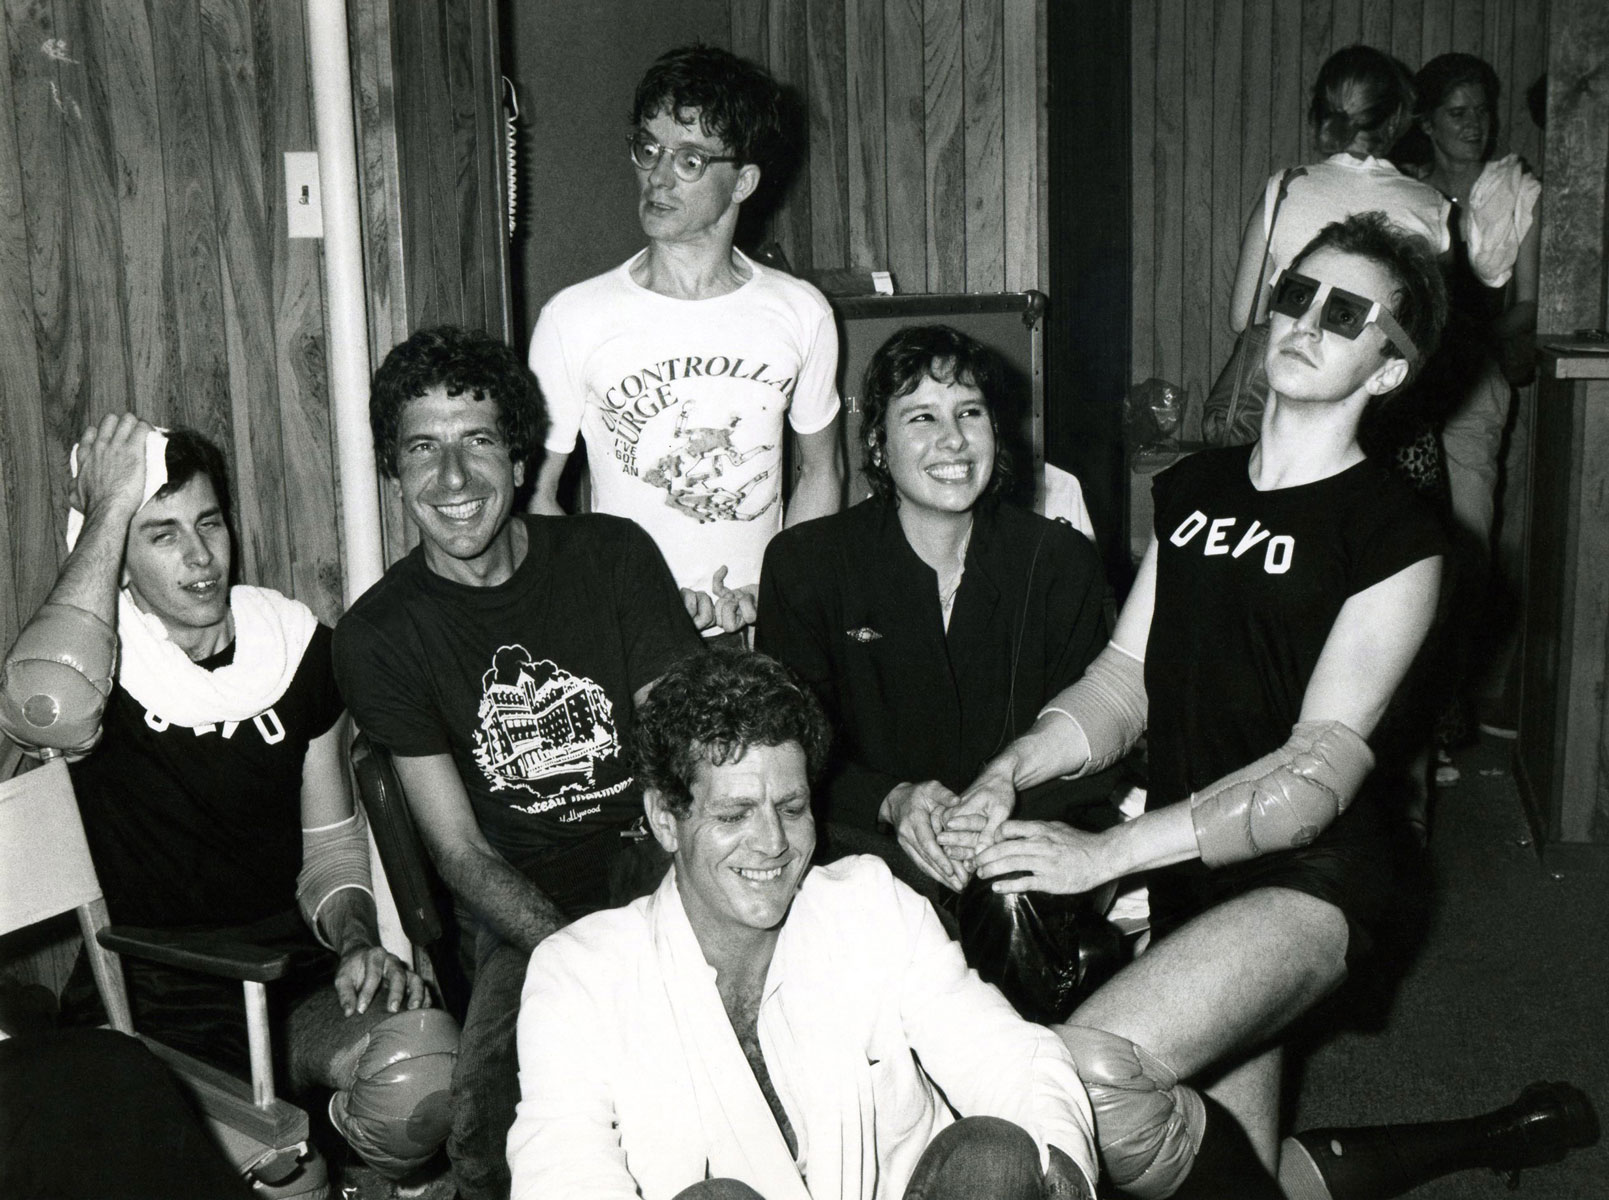 Leonard Cohen, David Blue (seated), Devo, and Martine Getty backstage at The Starwood in Los Angeles, Calfornia, 1978.